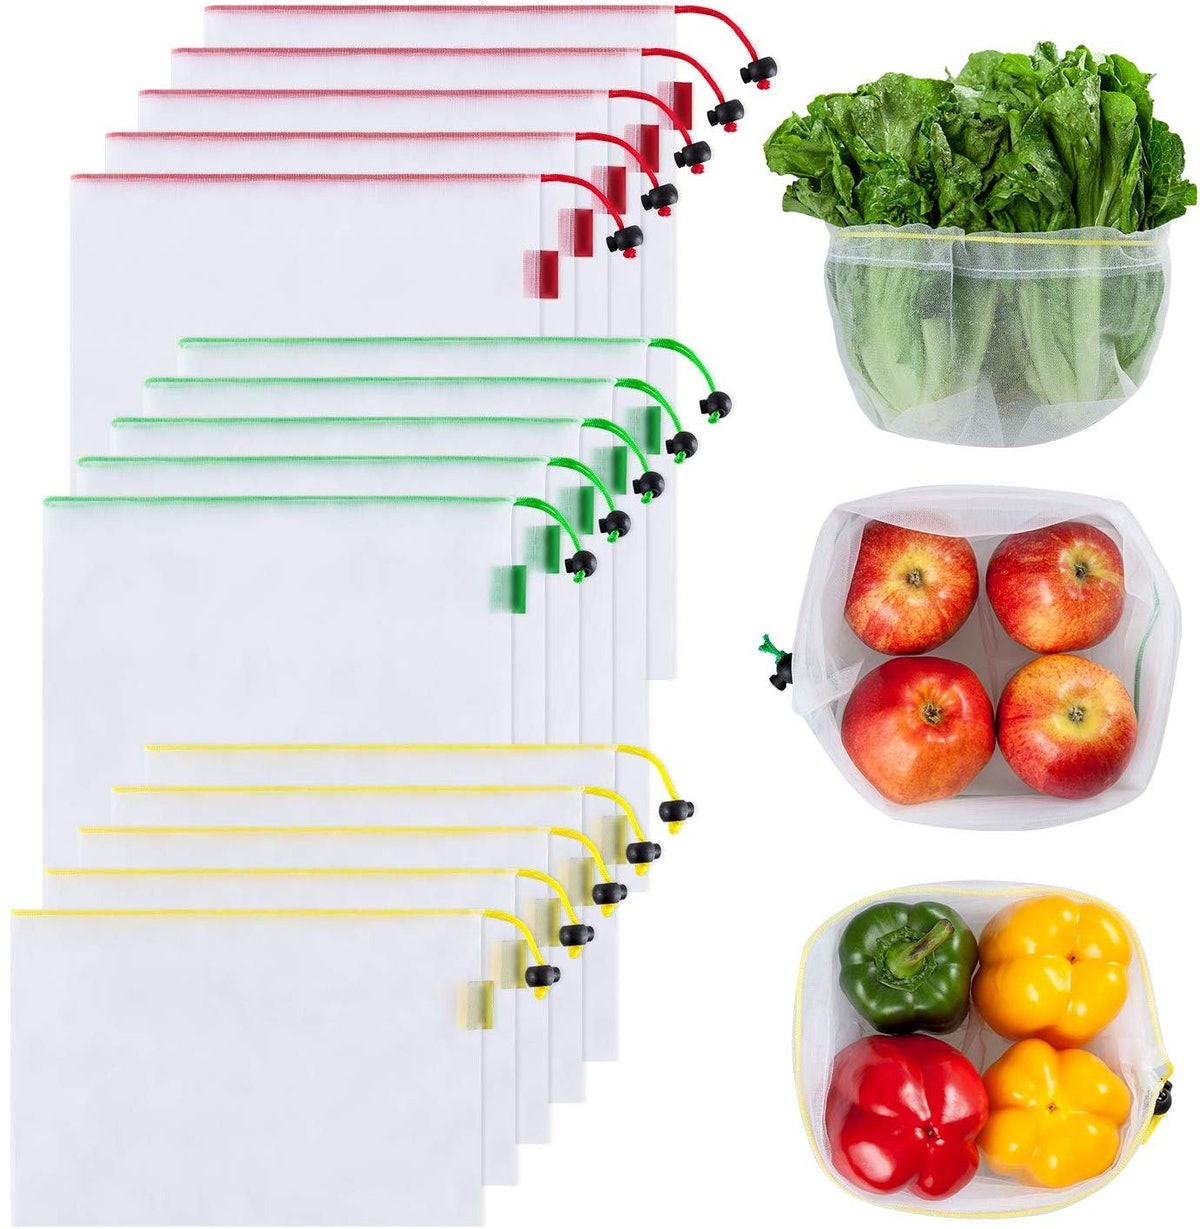 Ecowaare Reusable Produce Bags (15-Pack)